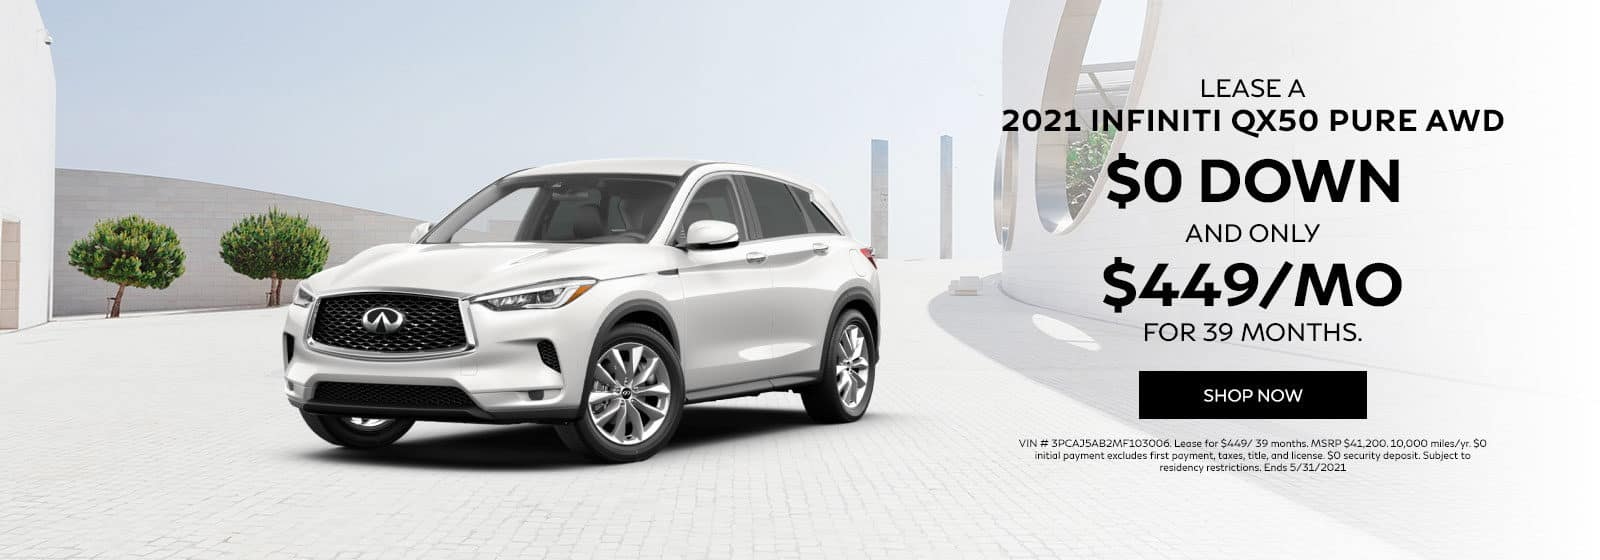 Lease a 2021 QX50 PURE AWD for $449/ 39 months